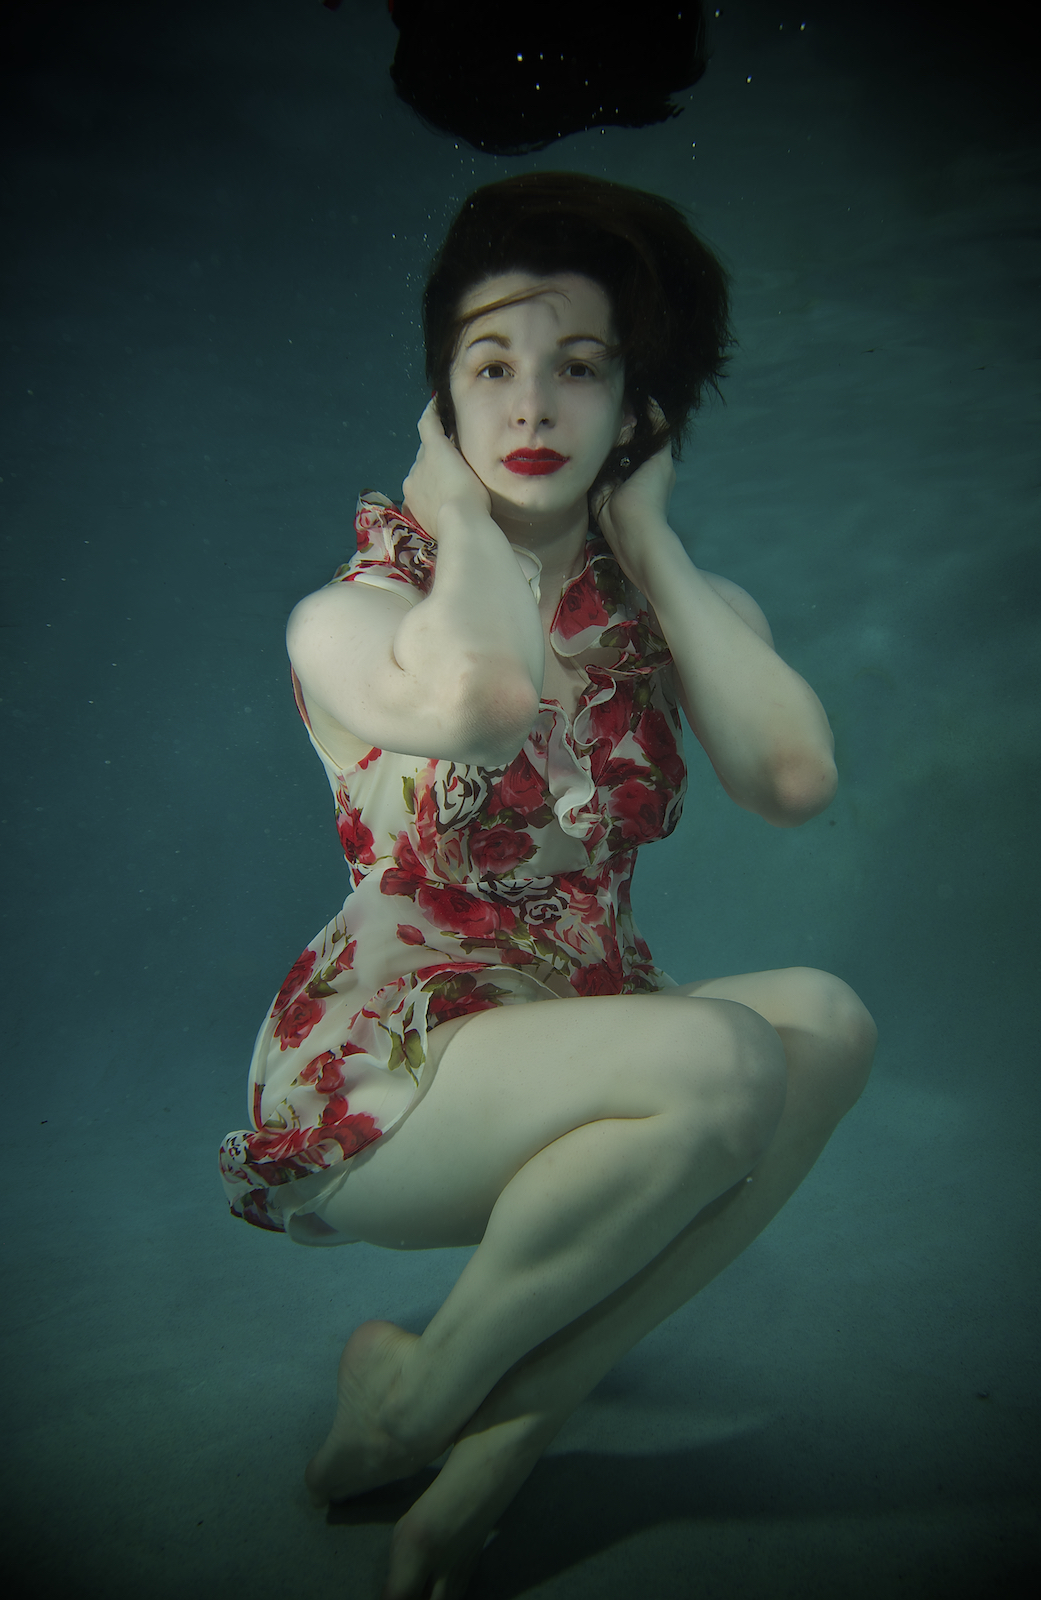 Underwater portrait of Marielle in New Orleans, Model, singer, and actor, Kimberly Kaye,photographed by New Orleans based photographer, Marc Pagani